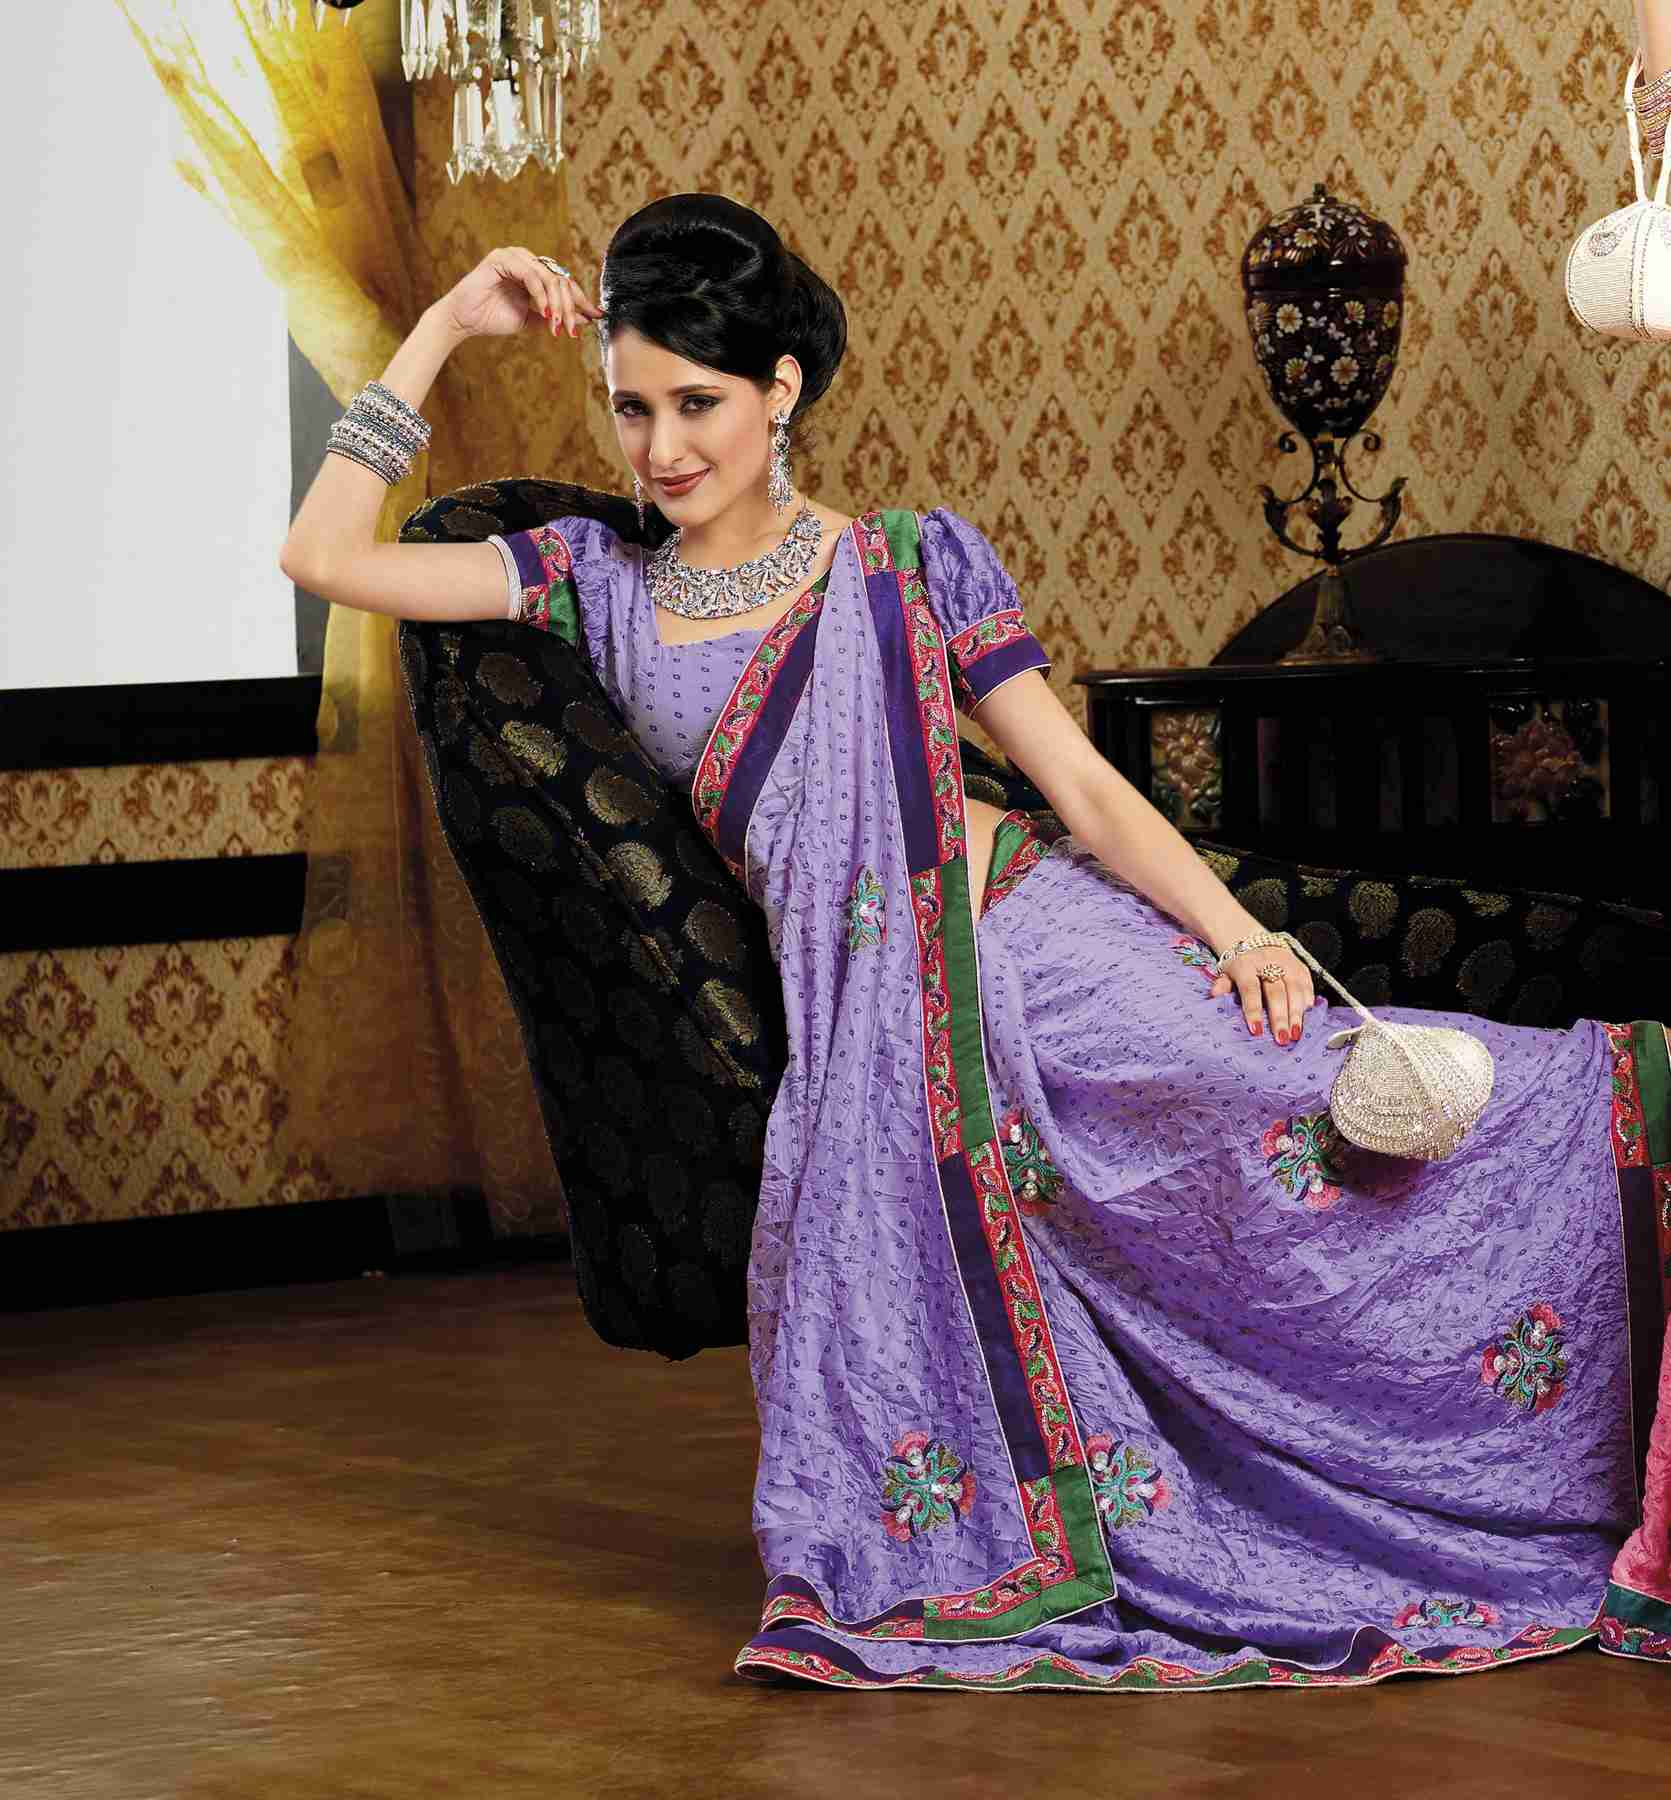 Indian Selections Deepti Mauve Faux Crepe Luxury Party Wear Sari saree at Sears.com